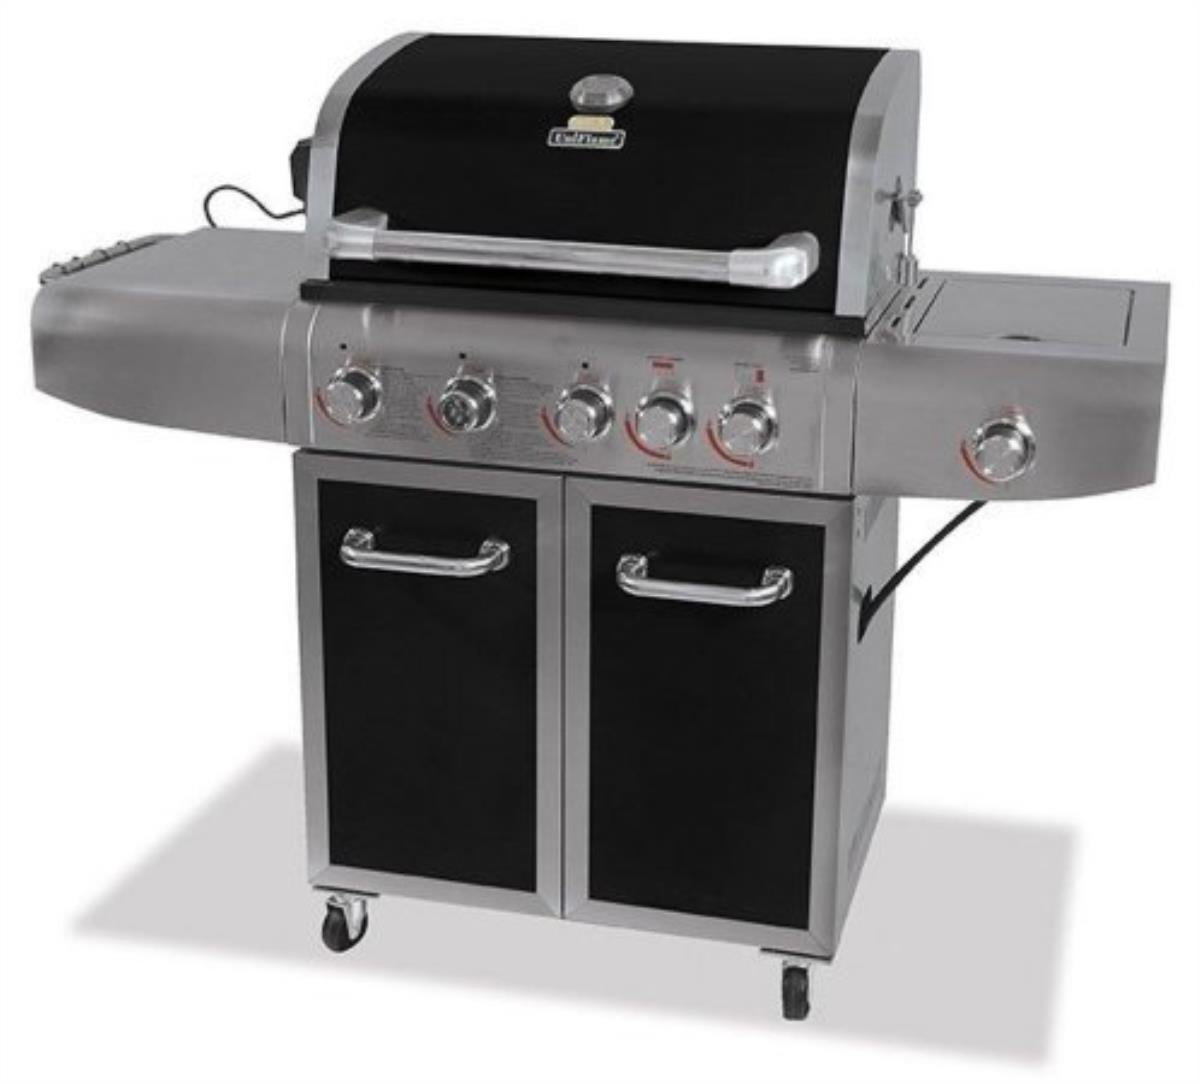 UniFlame Deluxe Outdoor 72k BTU LP Gas Barbecue Grill w/Rotisserie